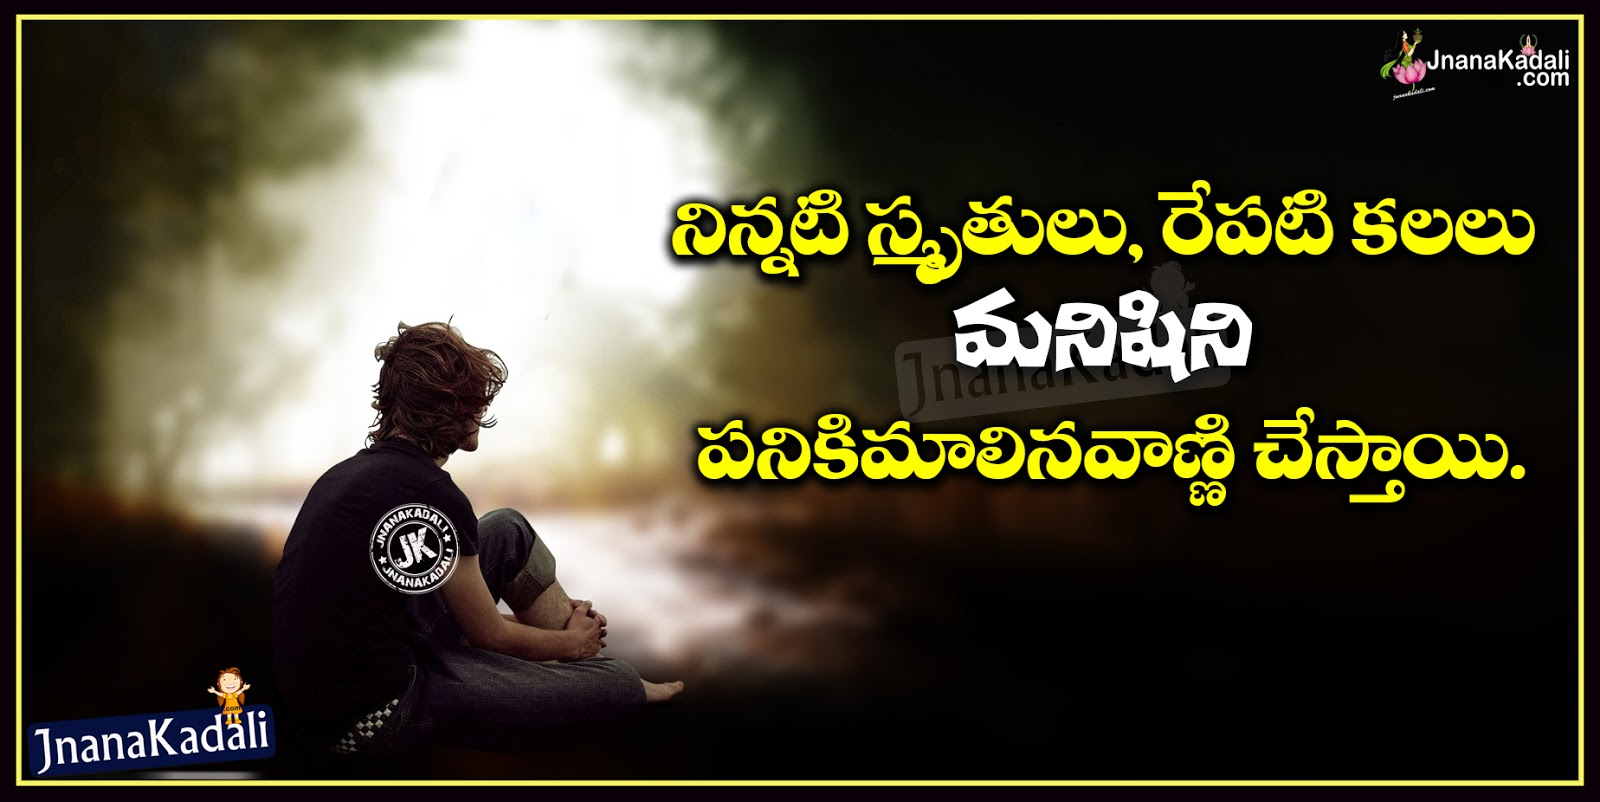 Famous Quotes About Life Lessons Lessons Learned From Life Quotations In Telugu  Jnana Kadali